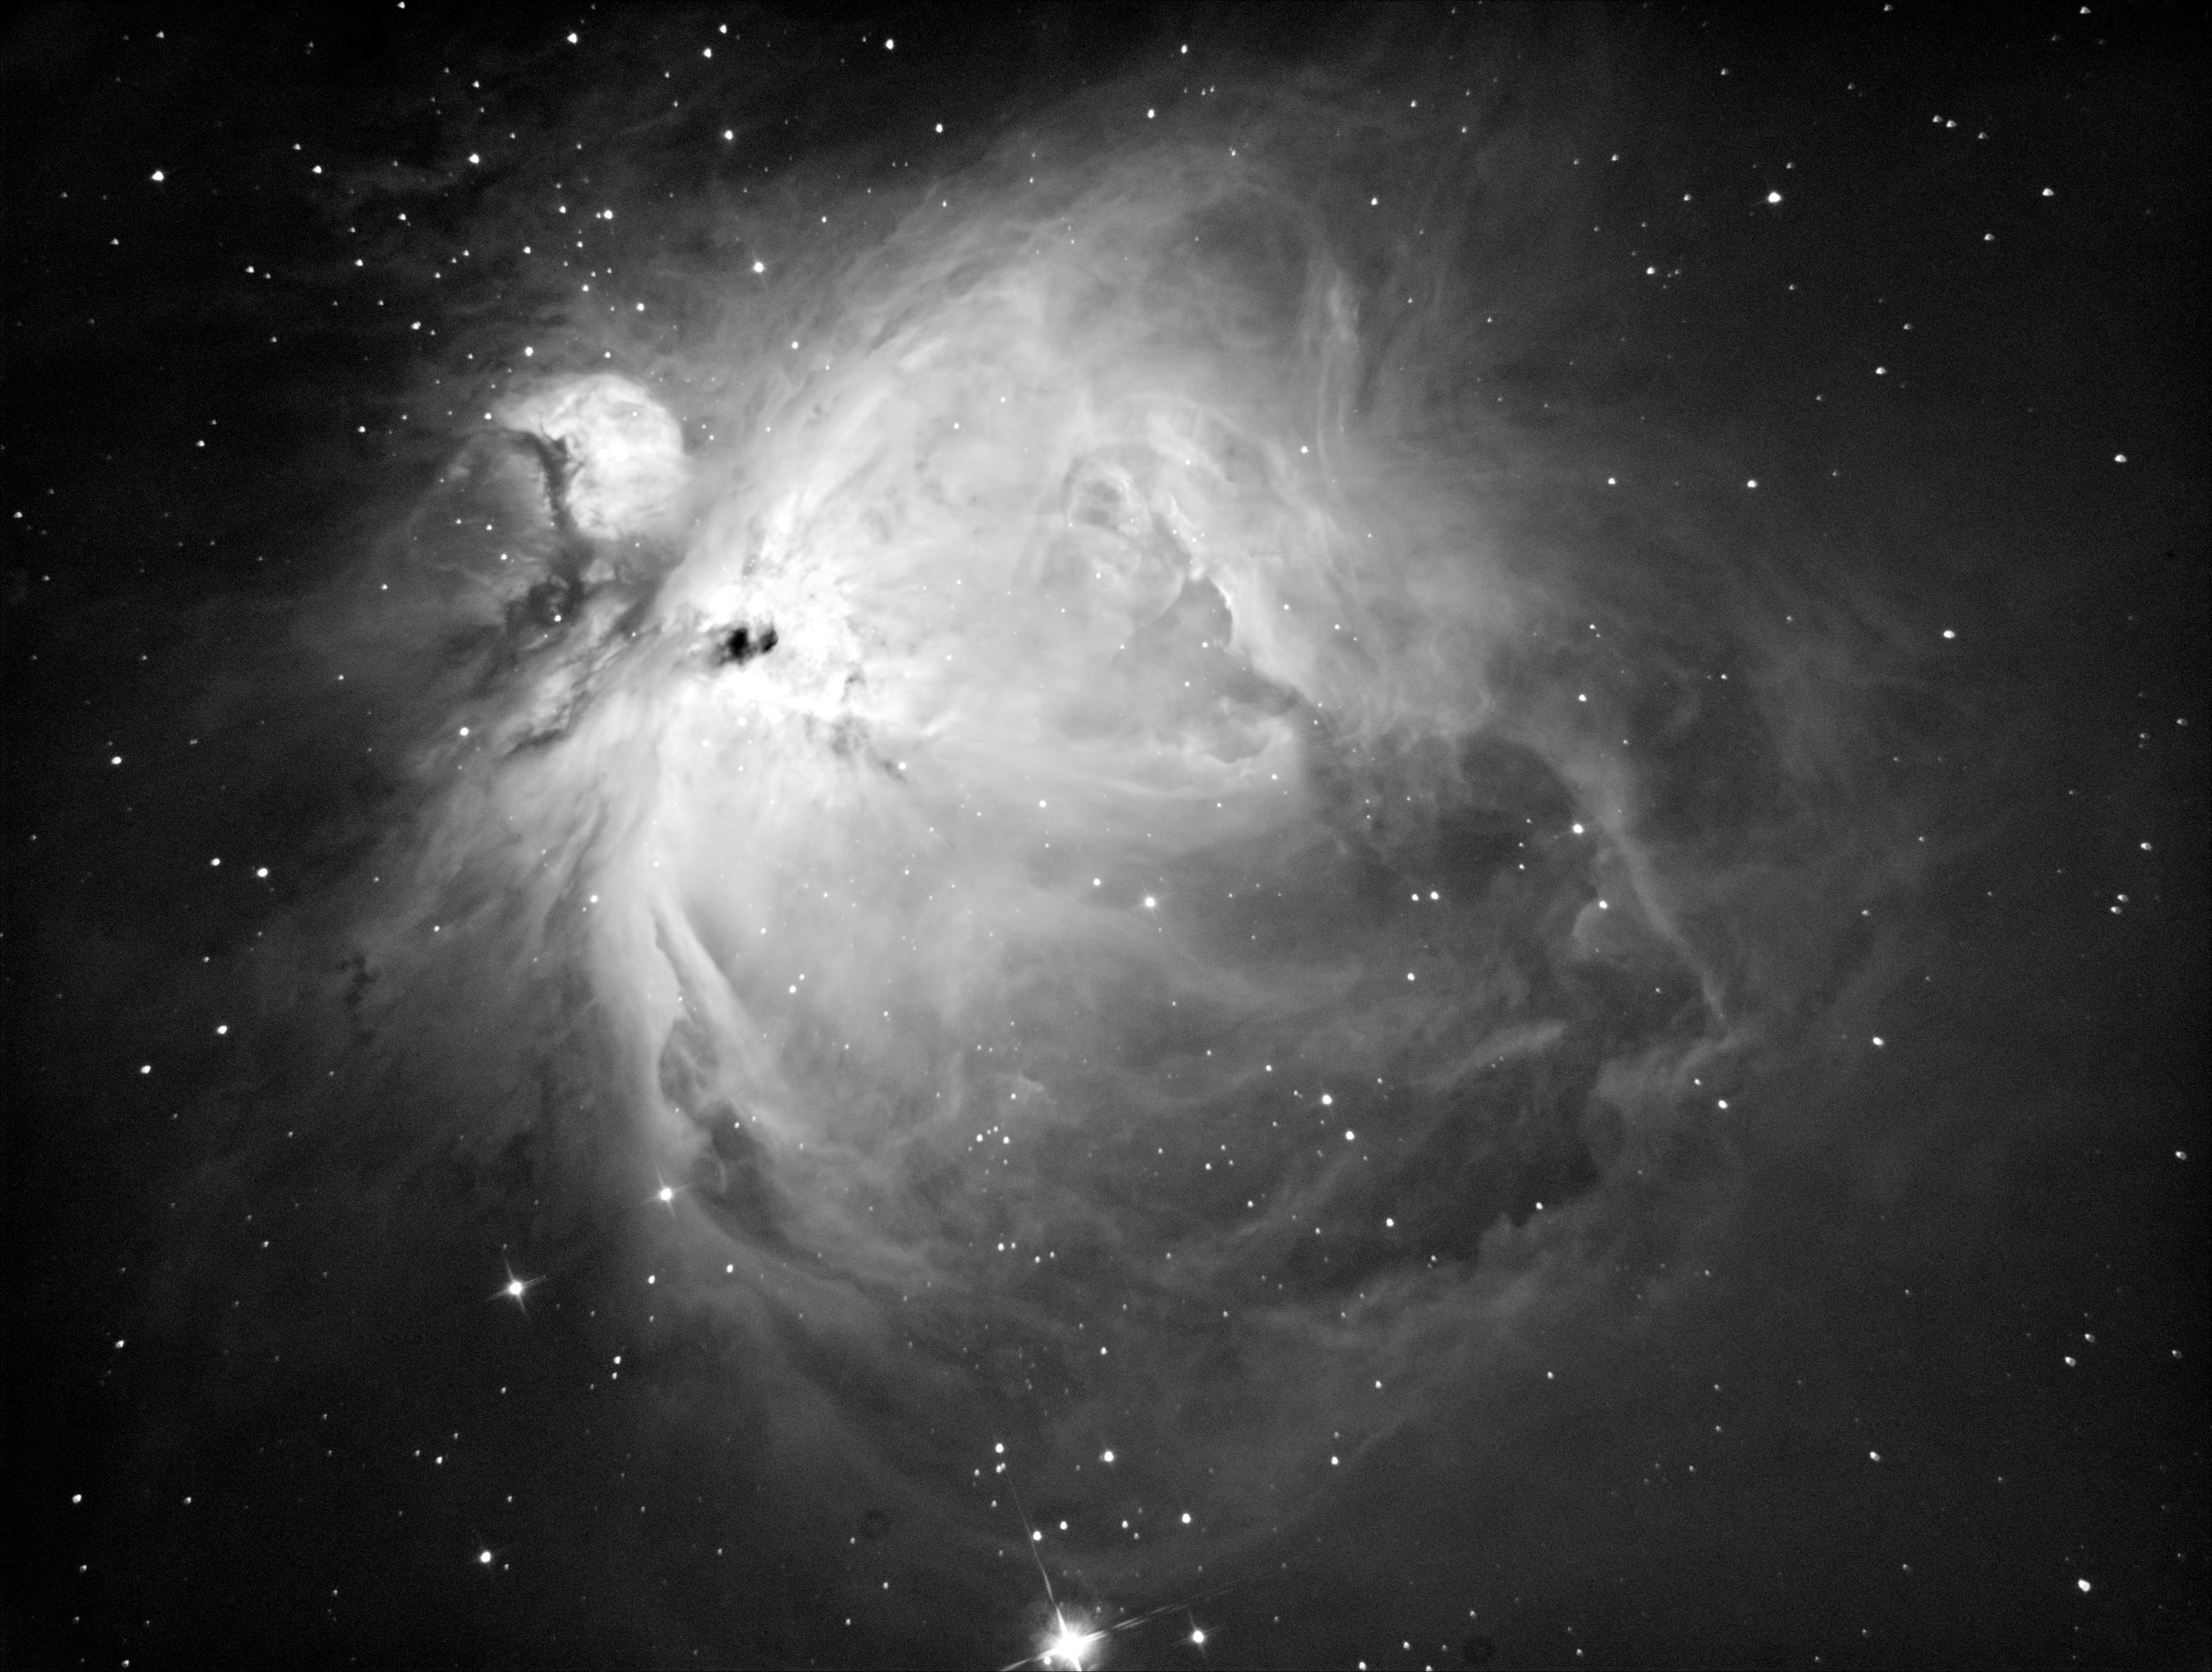 M42_DSS_000_PS_HDR_PS_01_Final.jpg